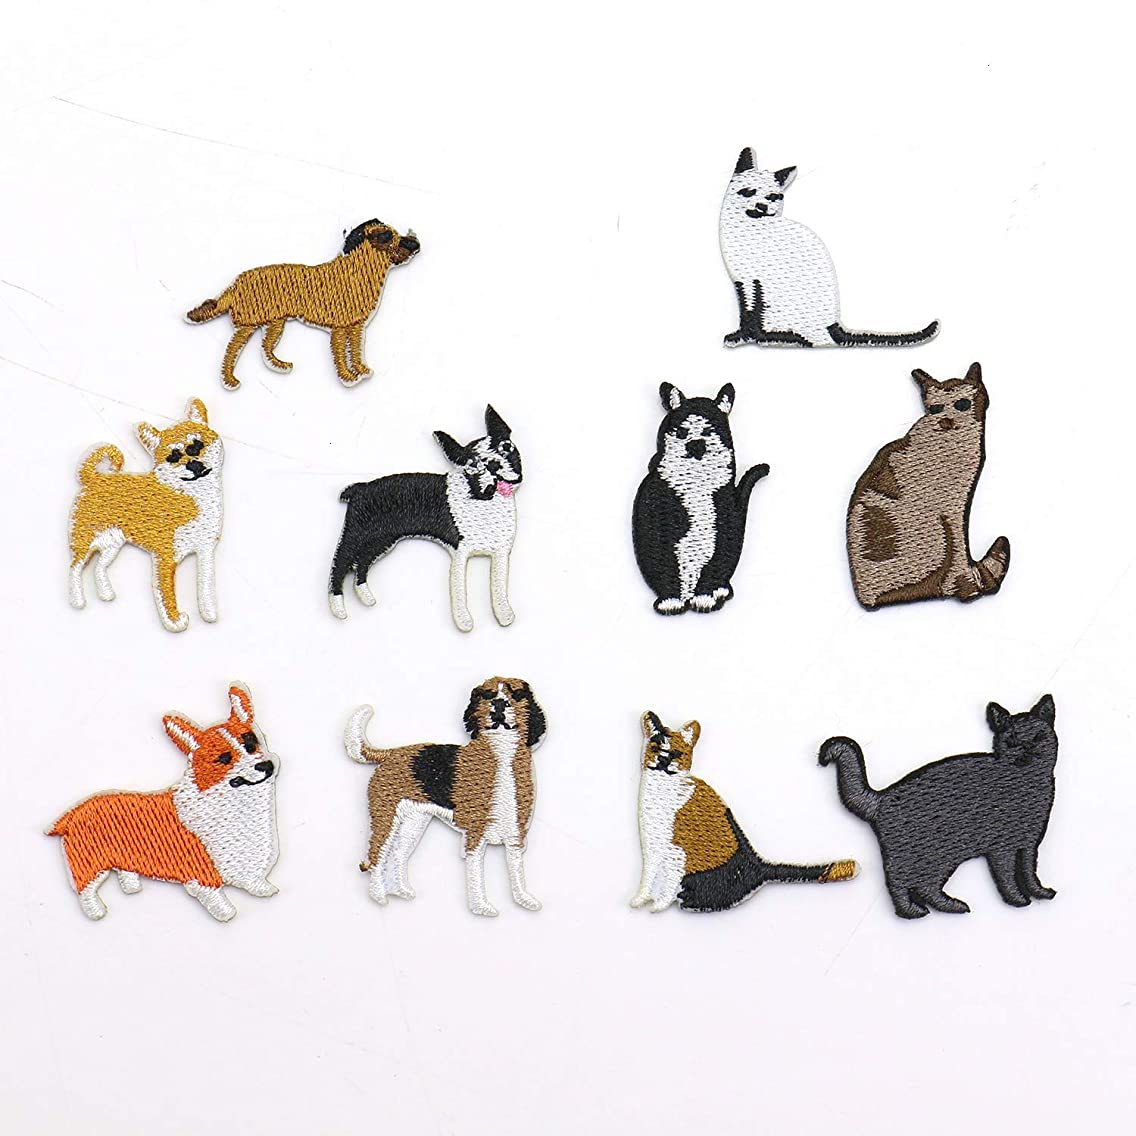 Monrocco 20 Pieces Cute Dog Cat Iron on Patches Embroidered Applique Sew On Applique Patch for Clothing Backpacks Bookbag Jeans T-Shirt Caps Shoes